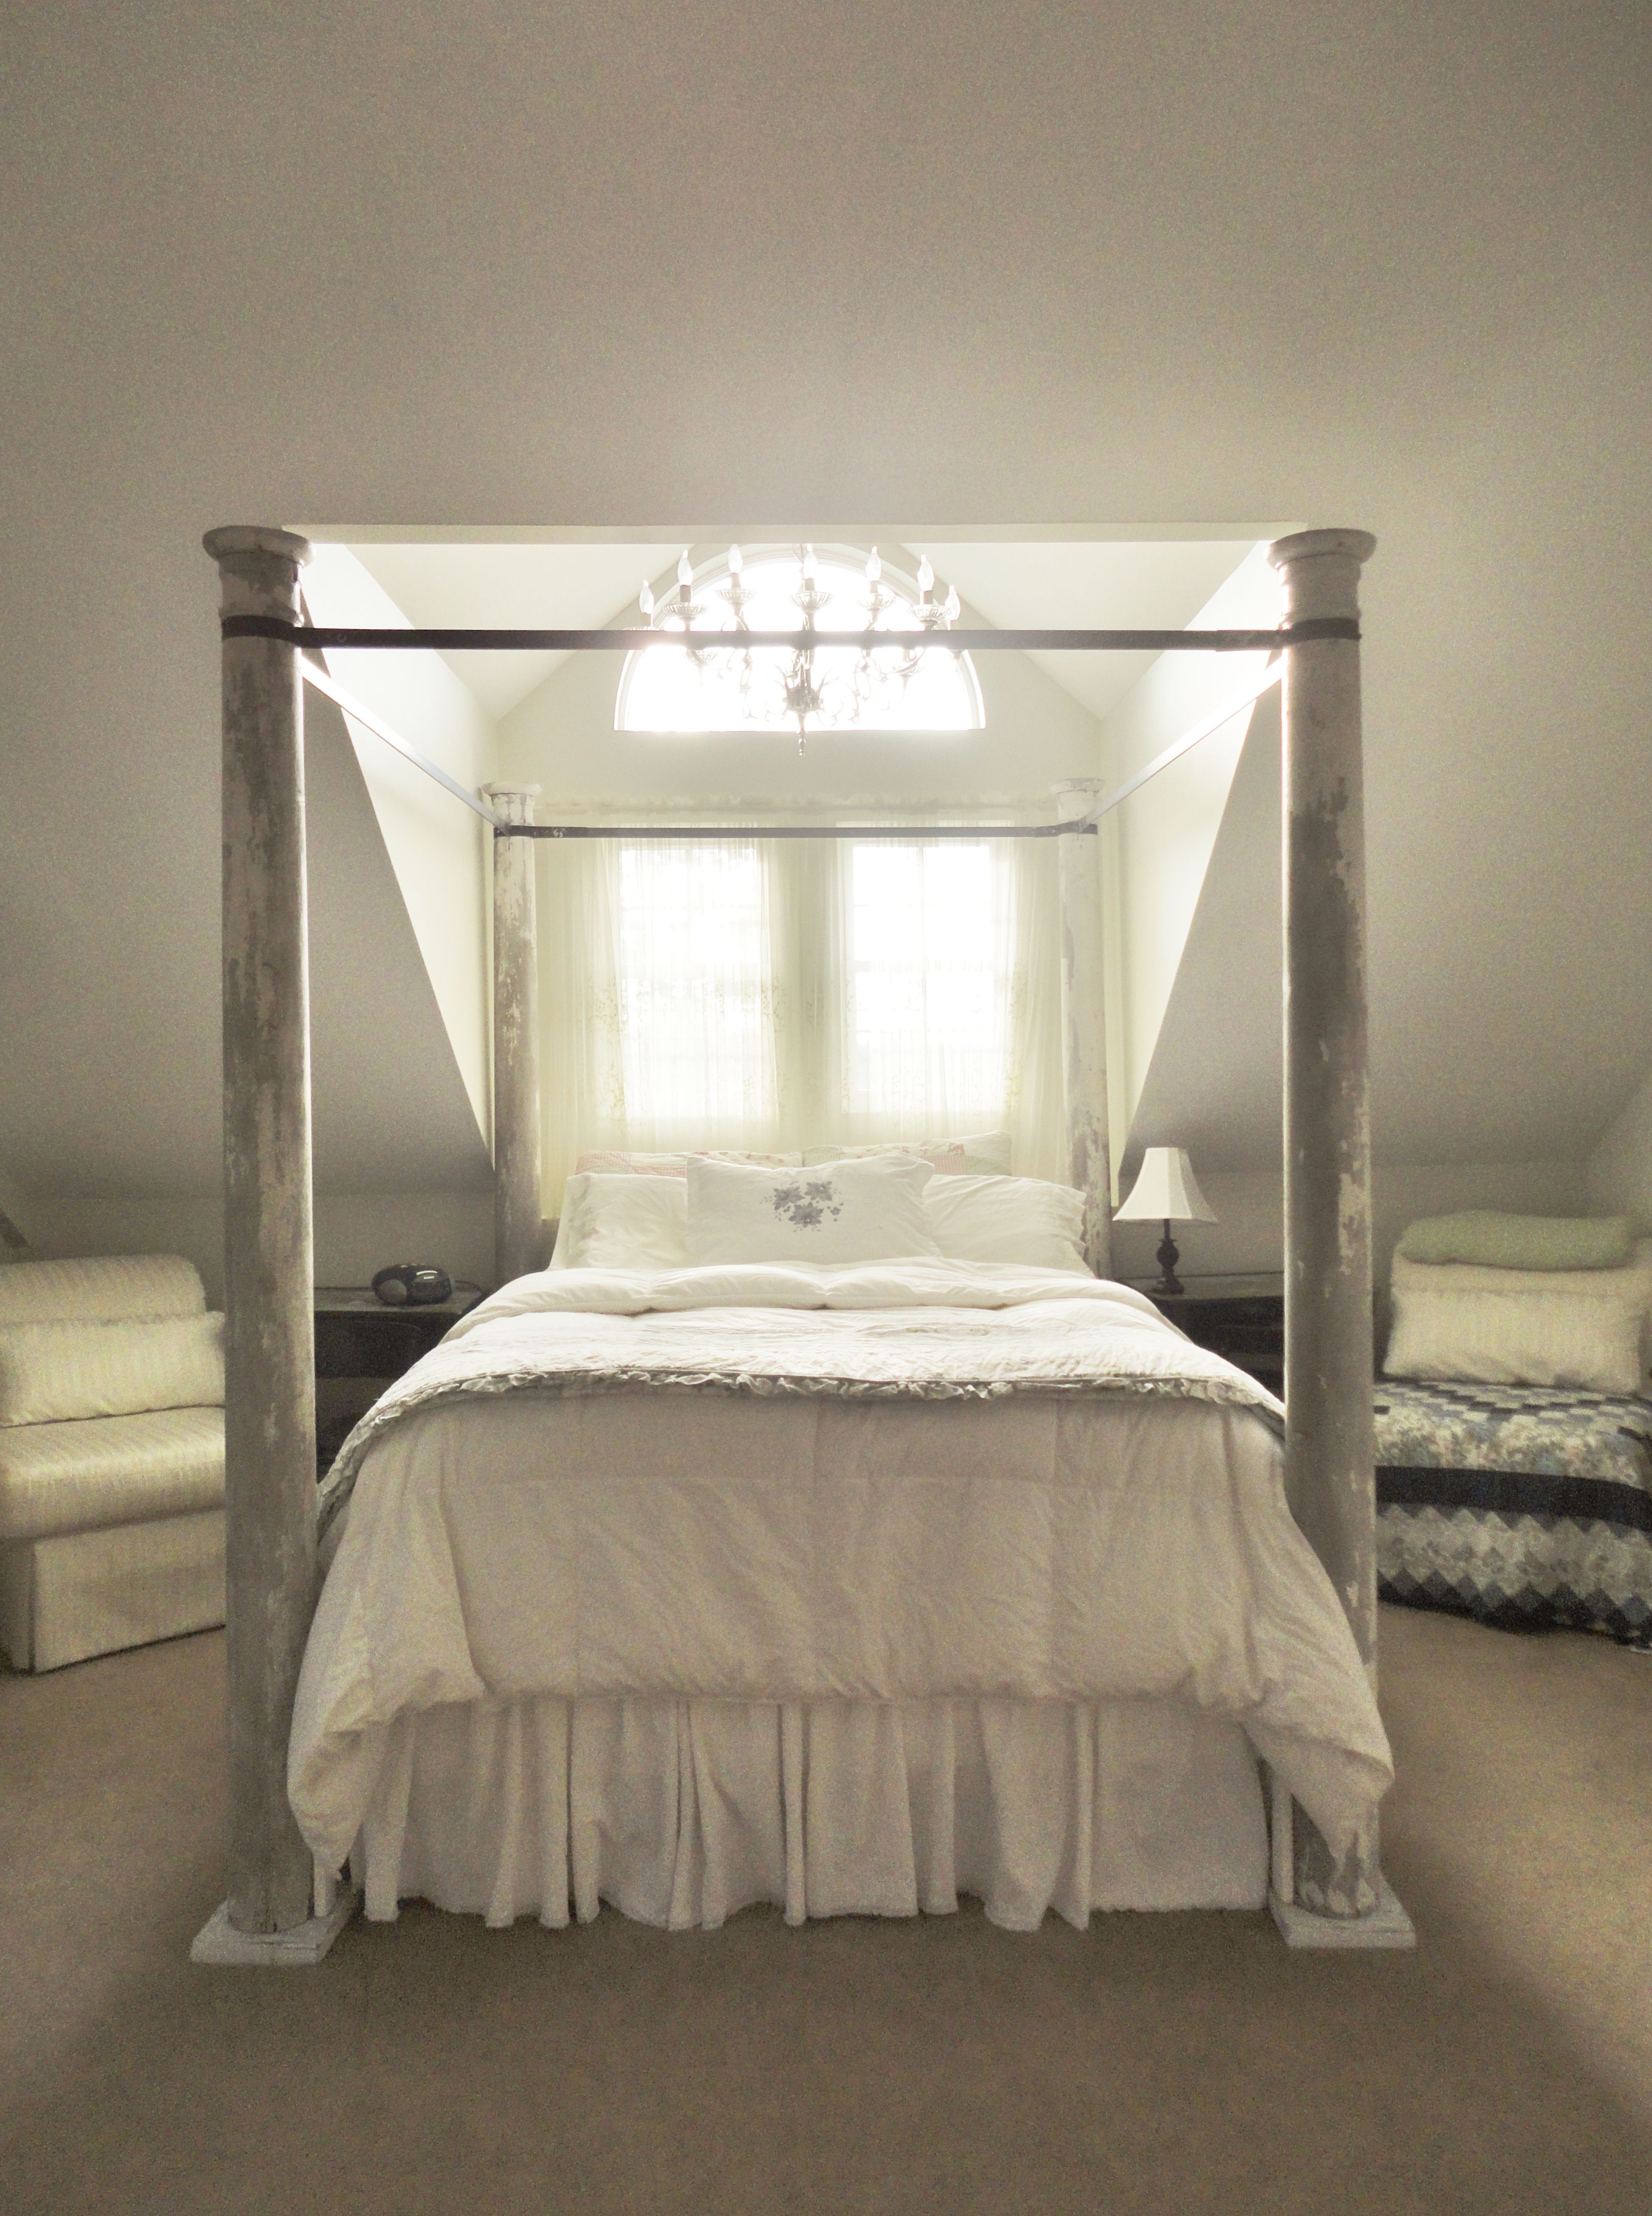 4post Bed Re Purposed Porch Post 4 Poster Canopy Bed Bedrooms Bed